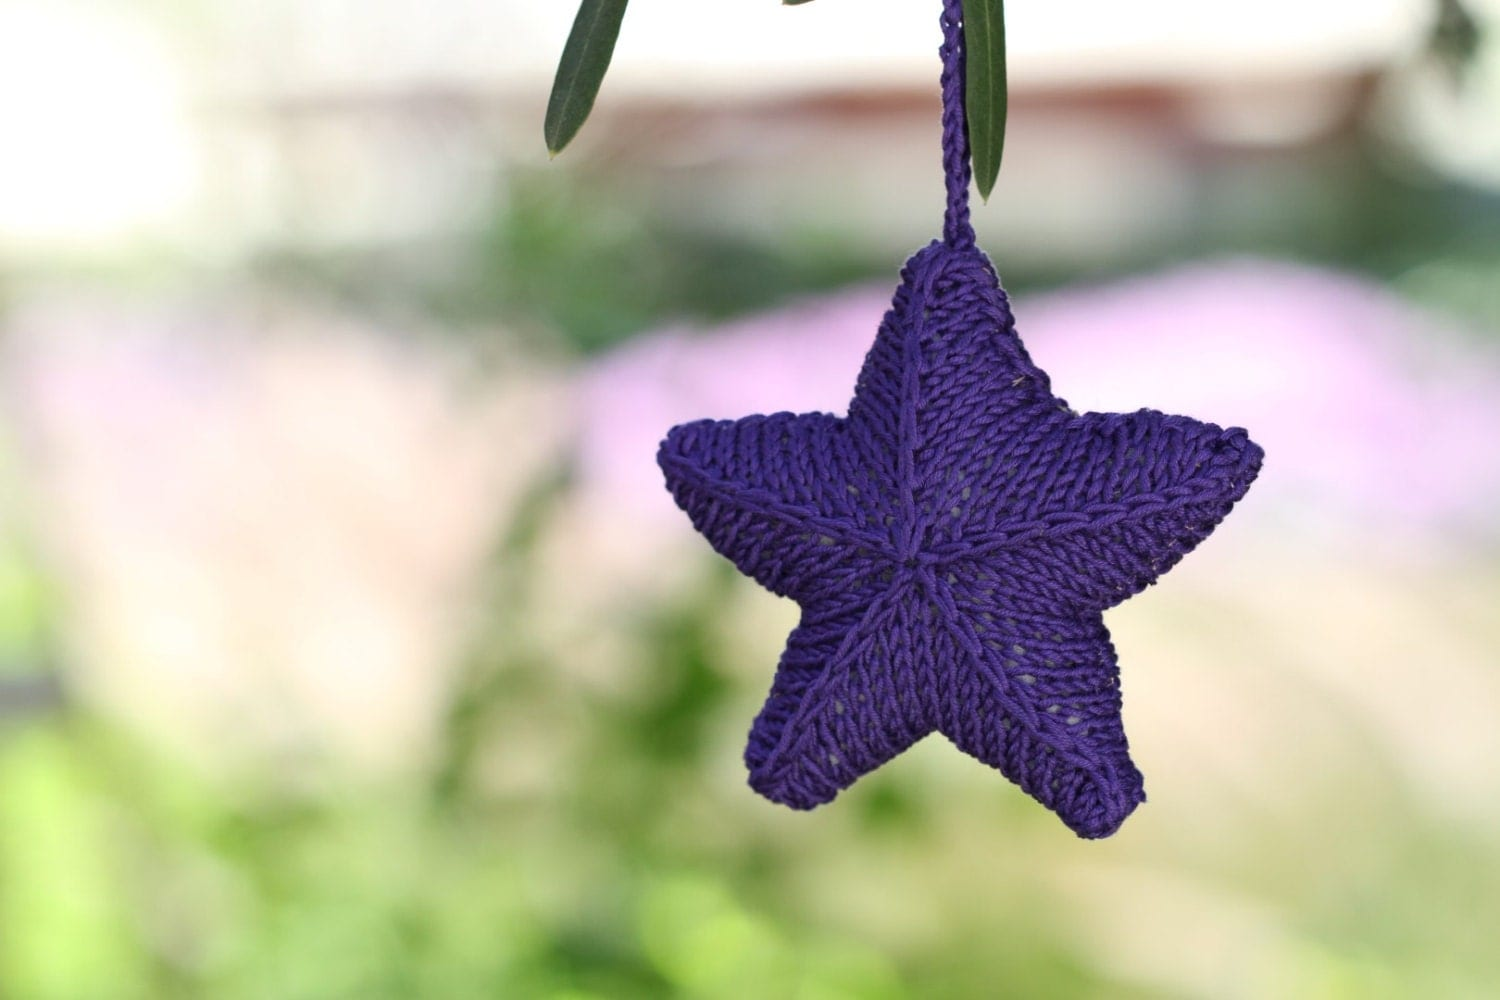 Knitted Starfish Pattern : KNITTED Starfish Ornament PDF PATTERN by etty2504 on Etsy